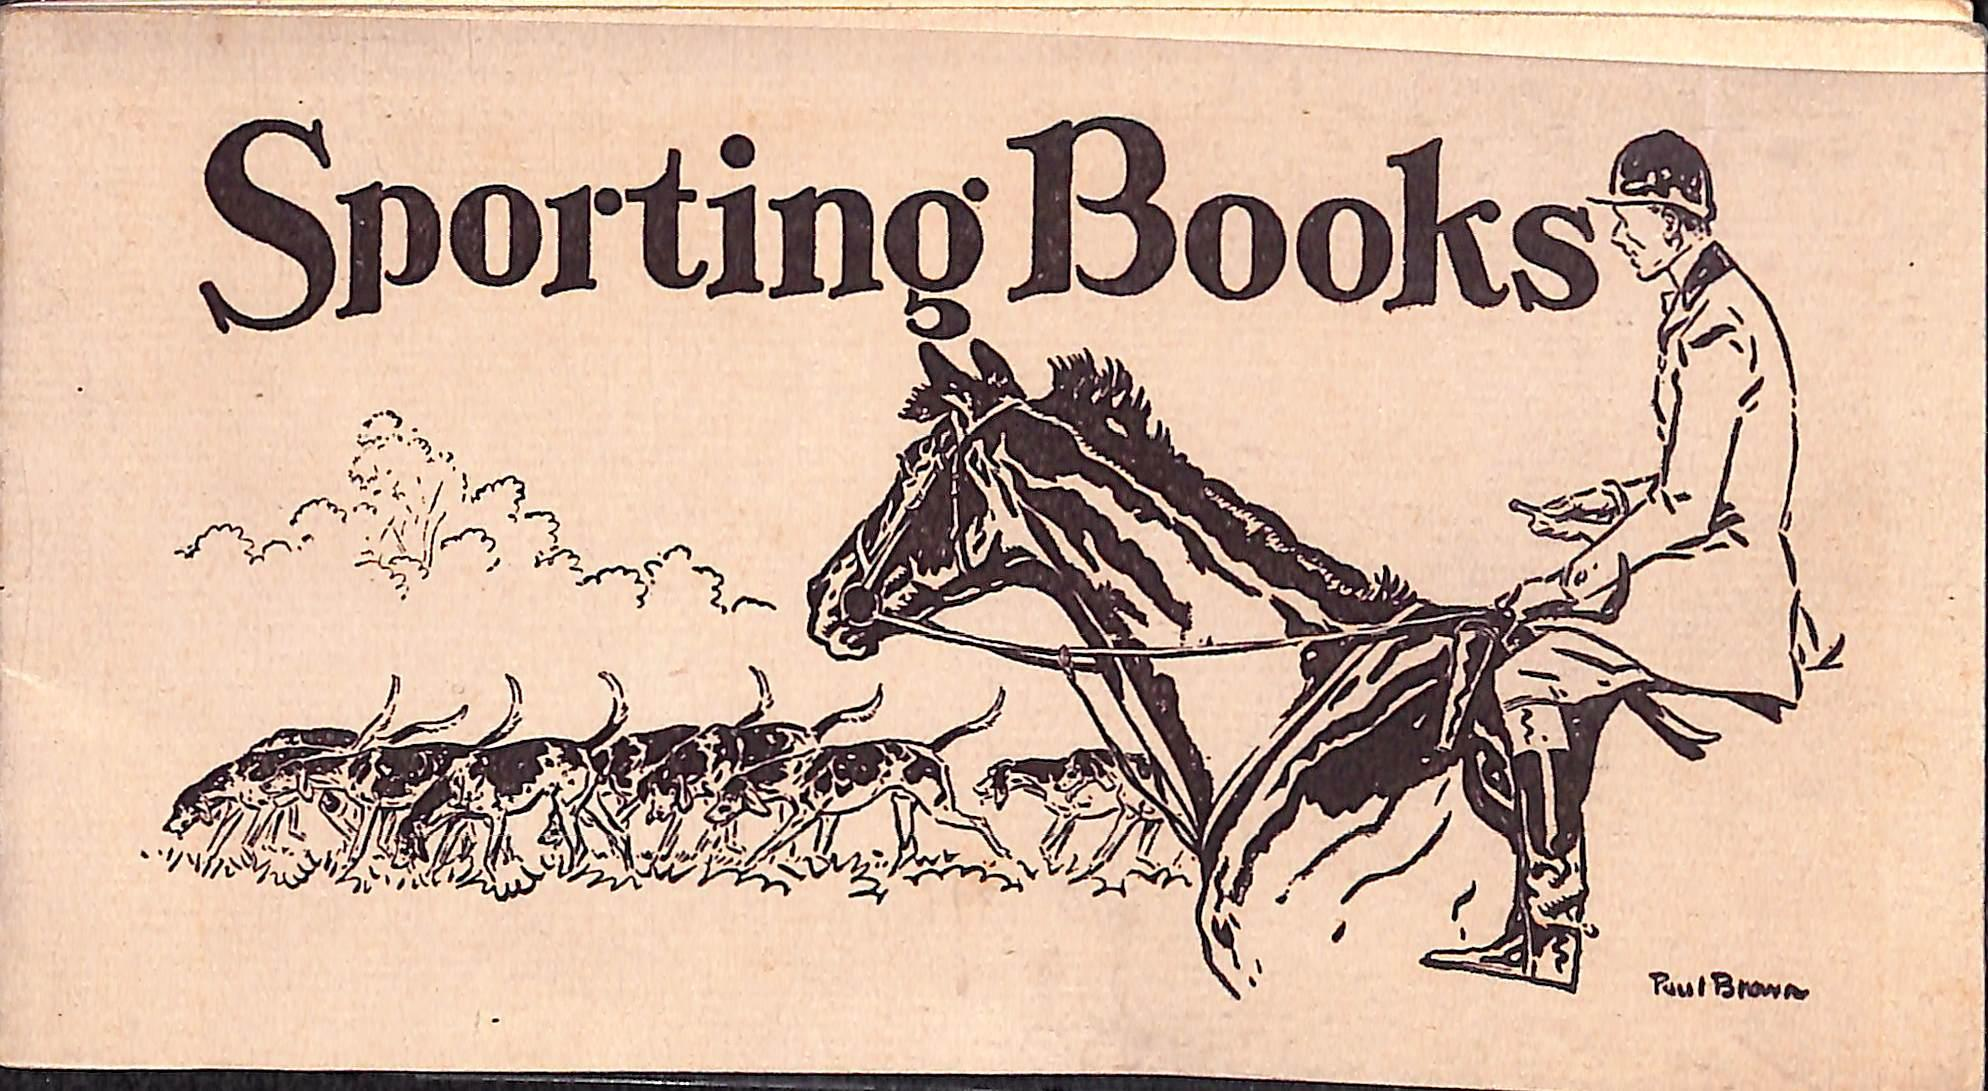 Sporting Books